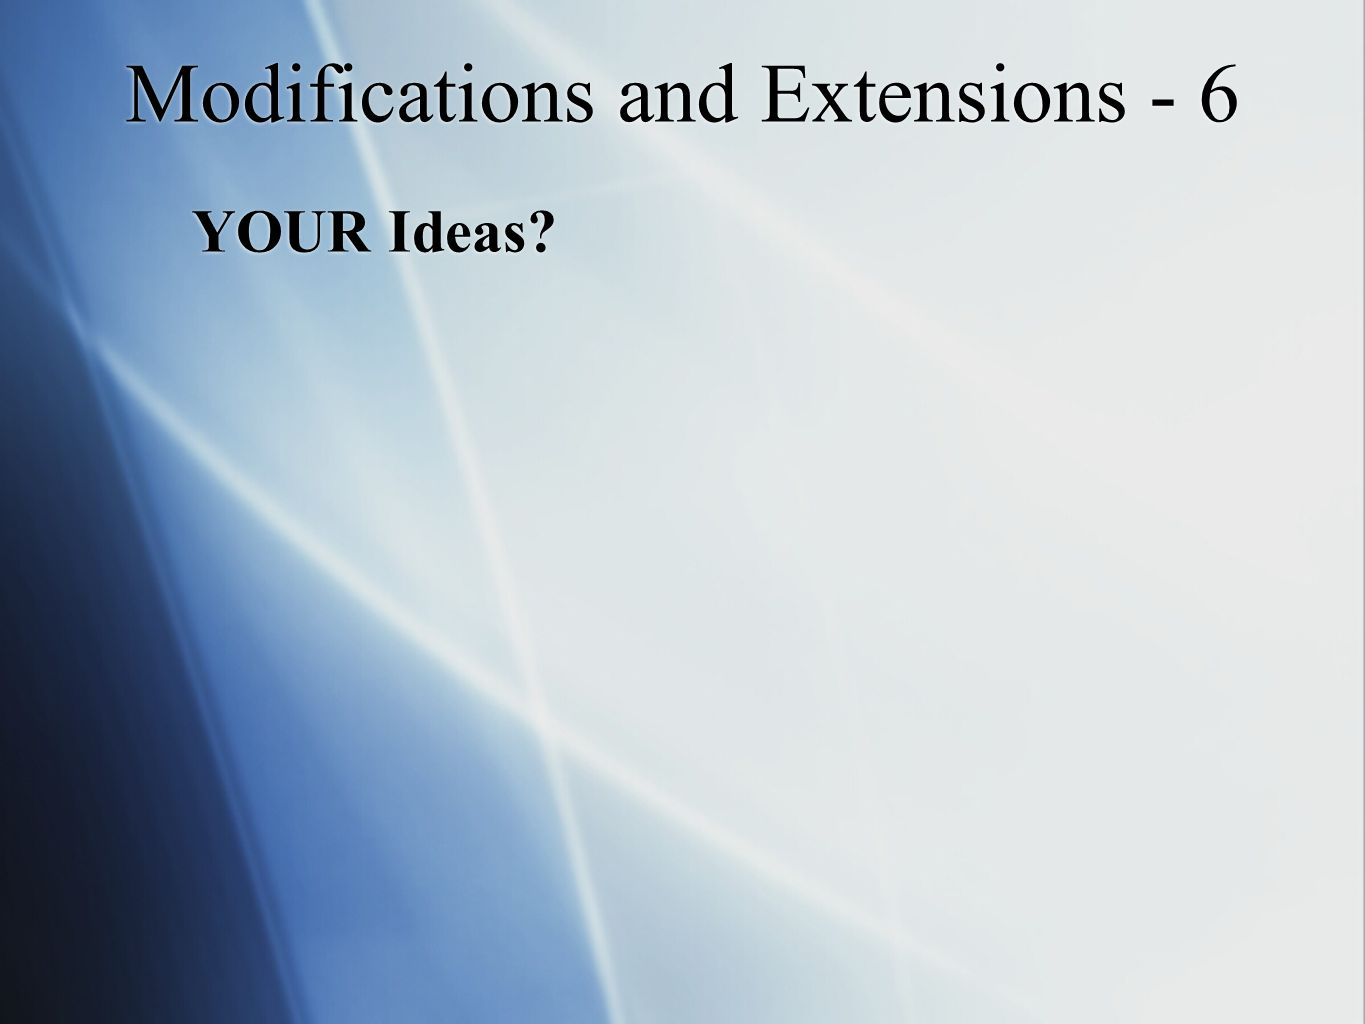 Modifications and Extensions - 6 YOUR Ideas